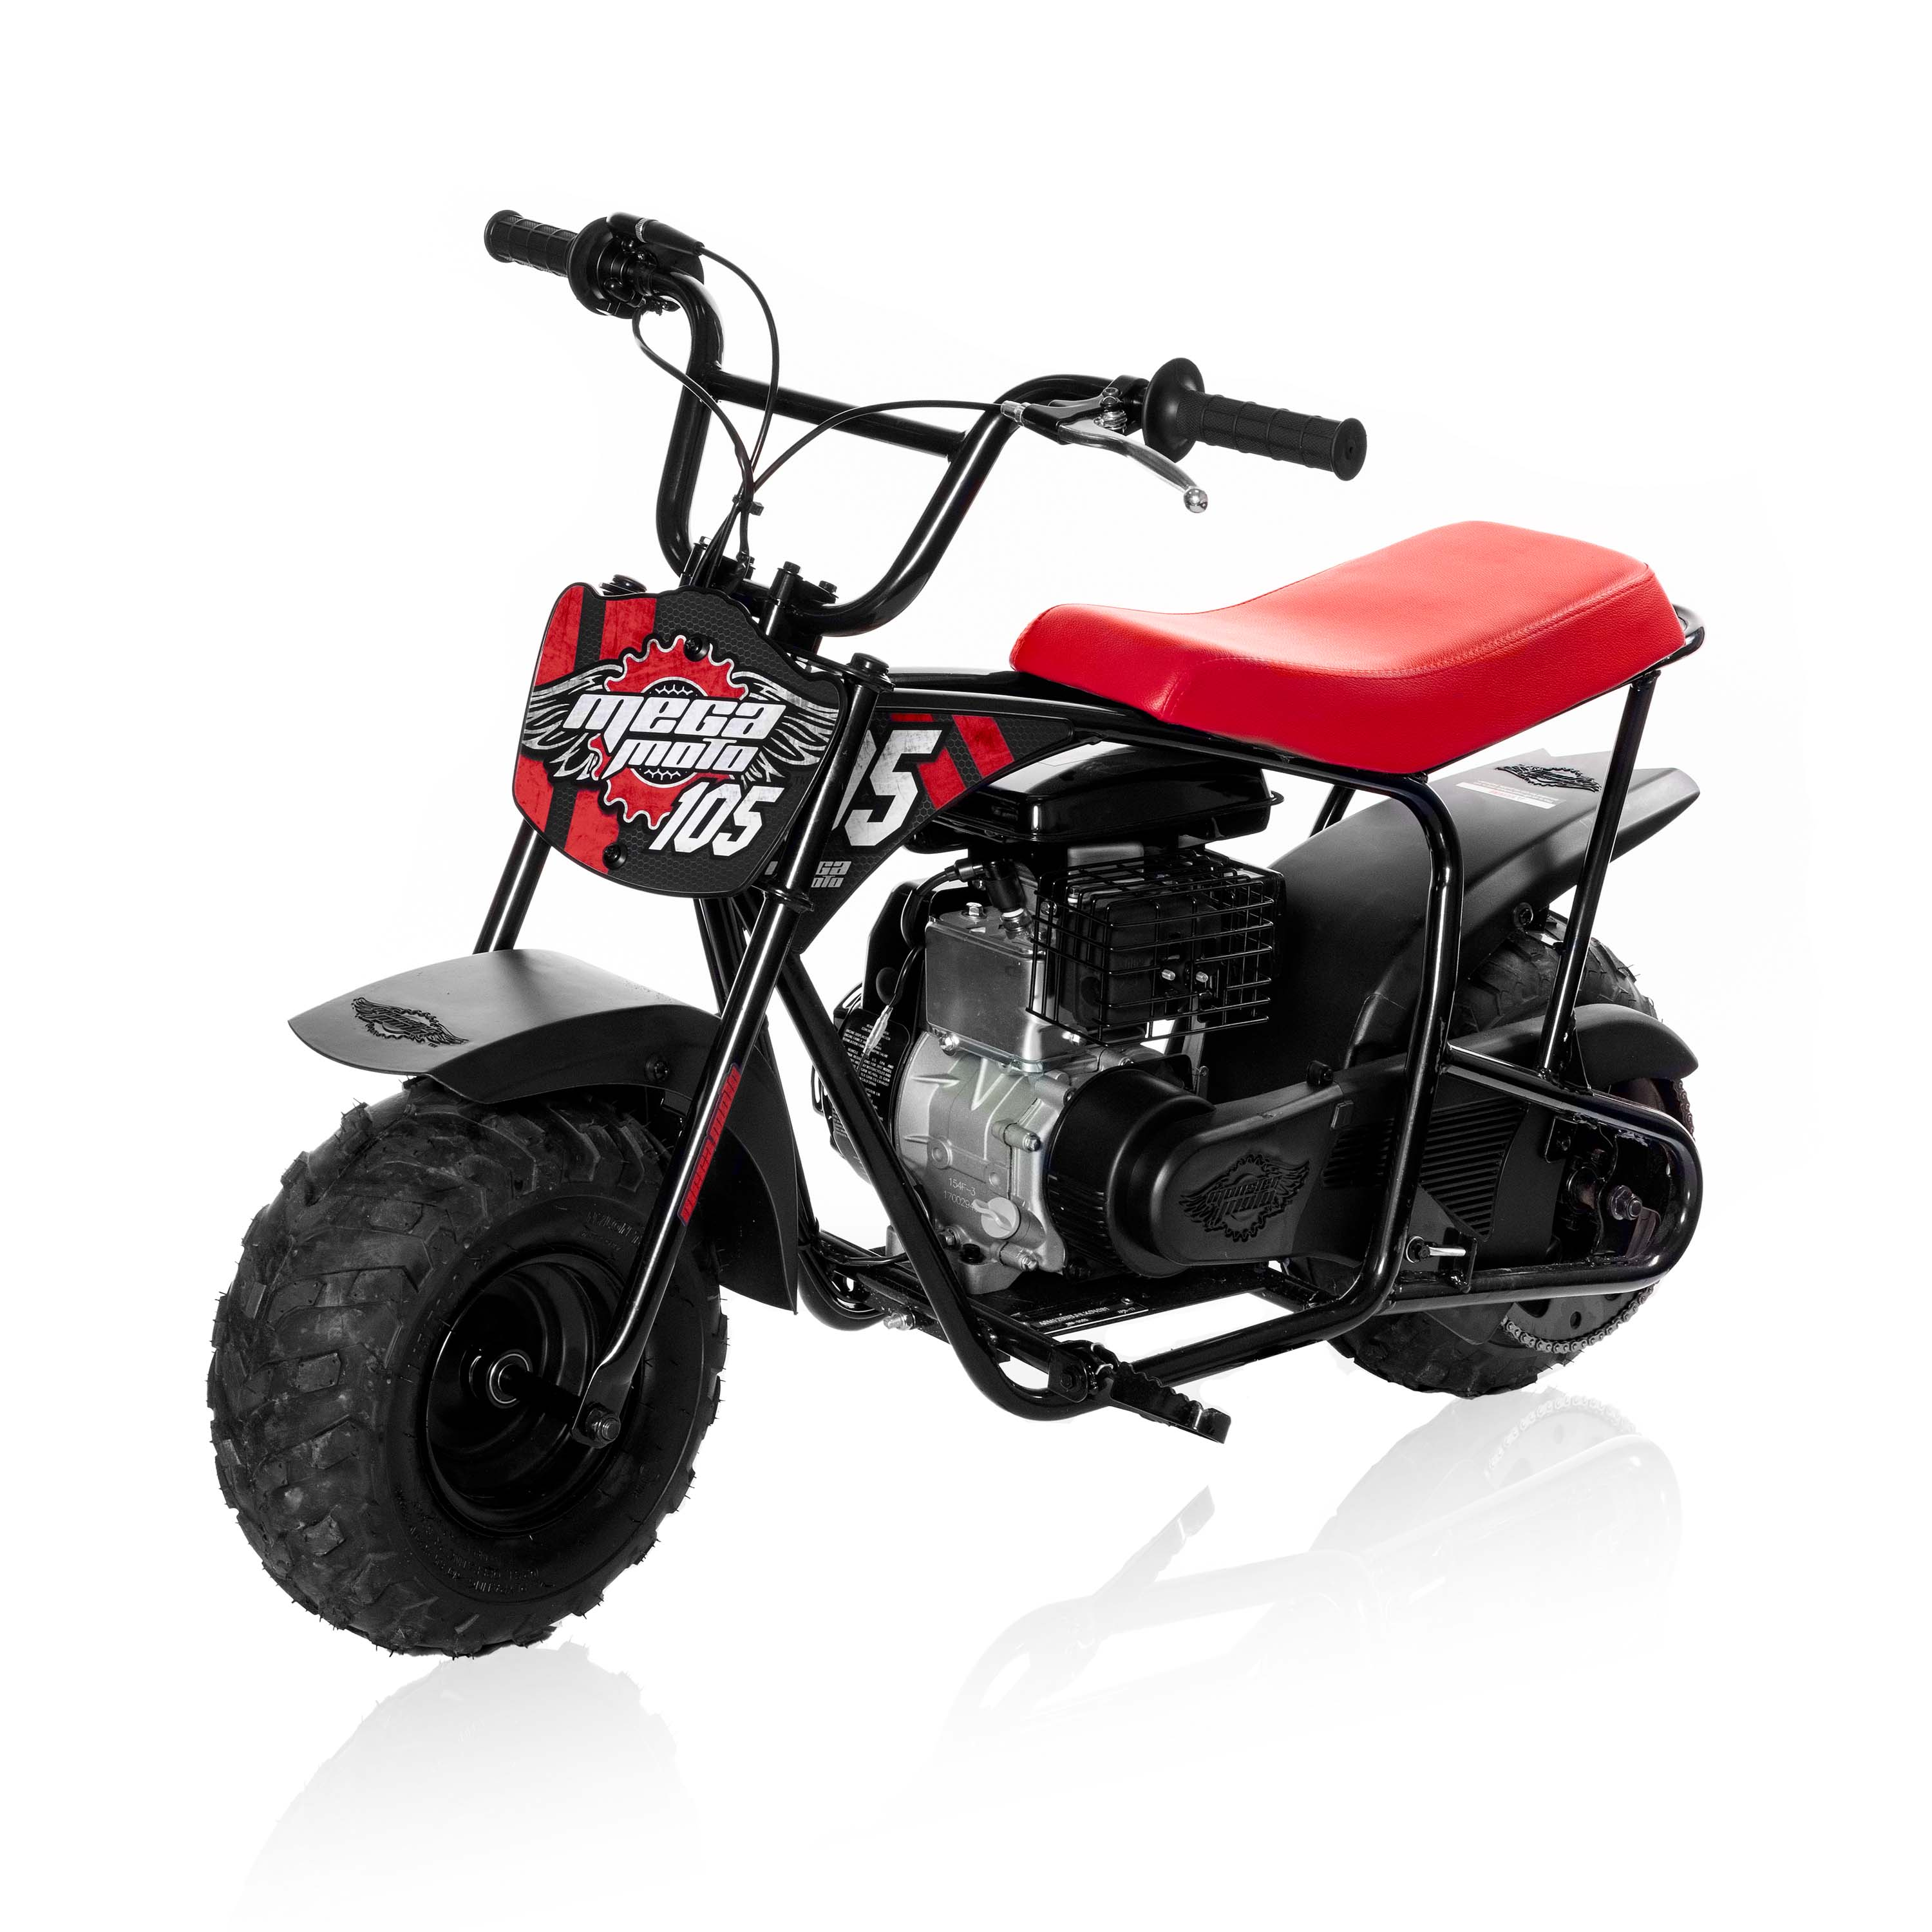 Mega Moto Gas Mini Bike Red & Black 105cc